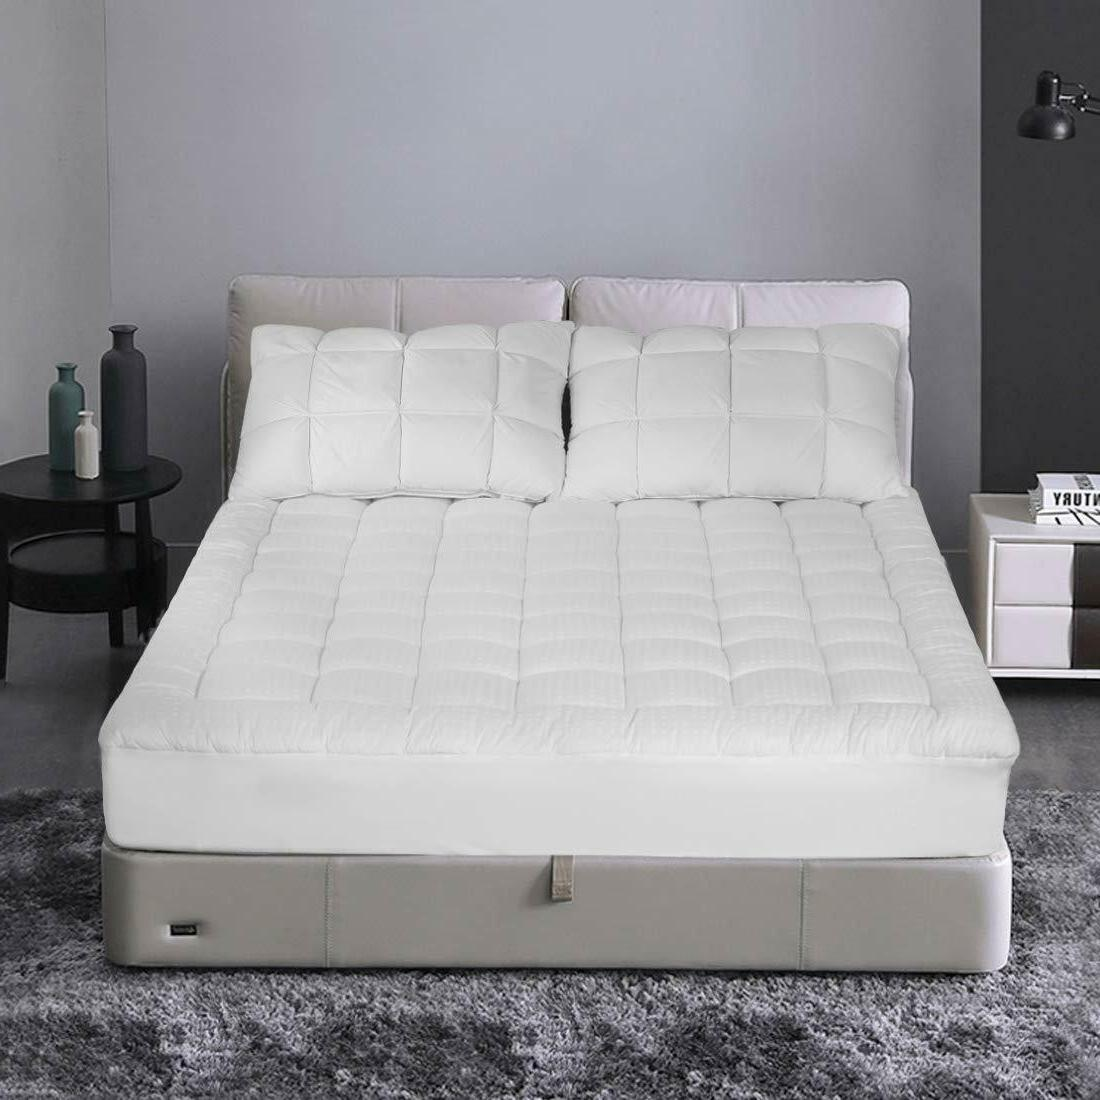 Queen Mattress Top Cooling Quilted Pad Cover Cotton 21